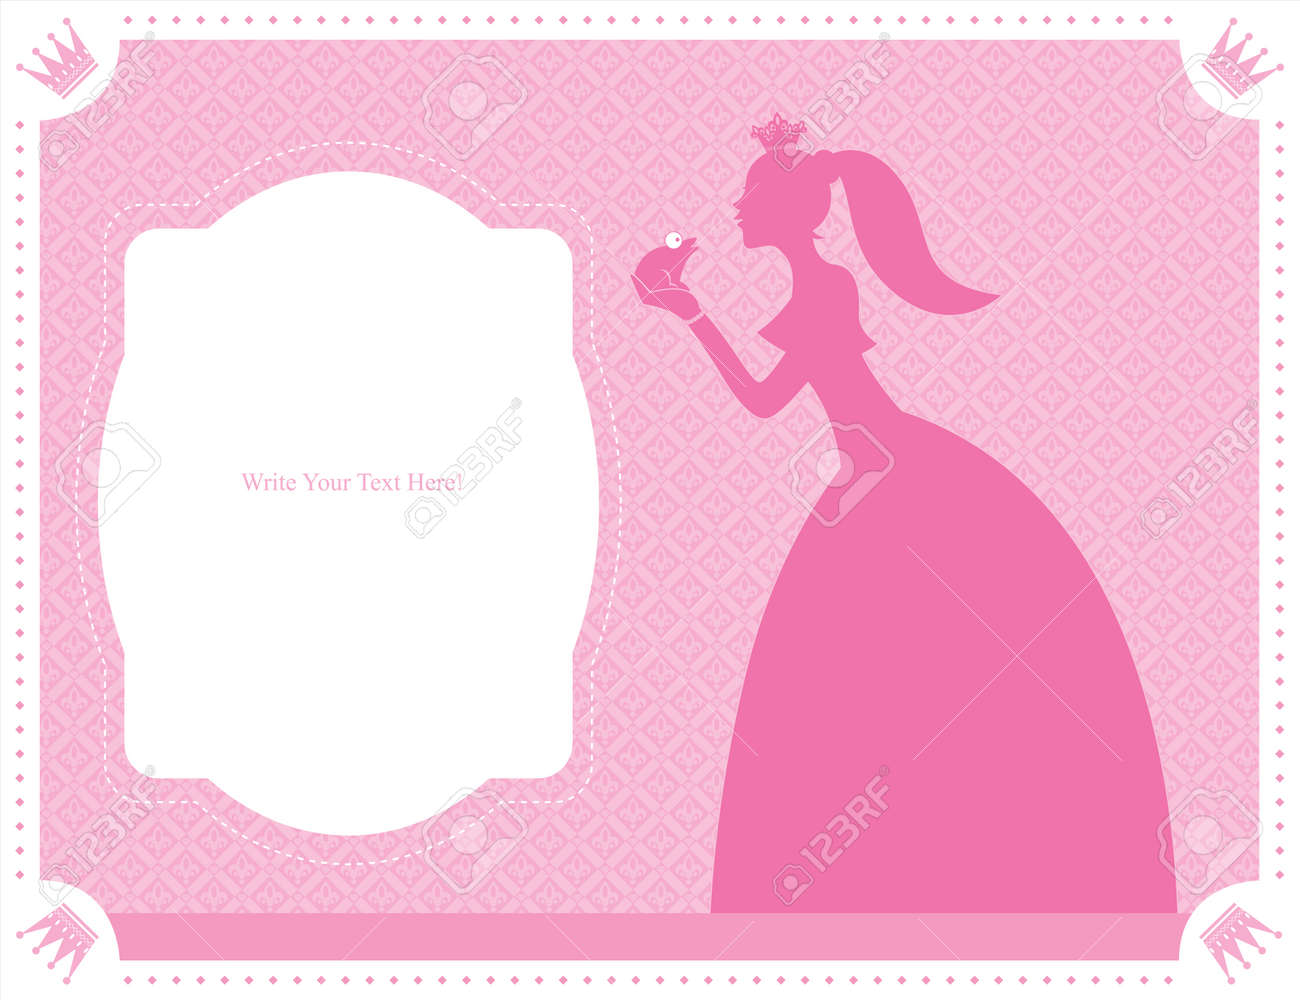 princess and frog card template royalty cliparts vectors vector princess and frog card template